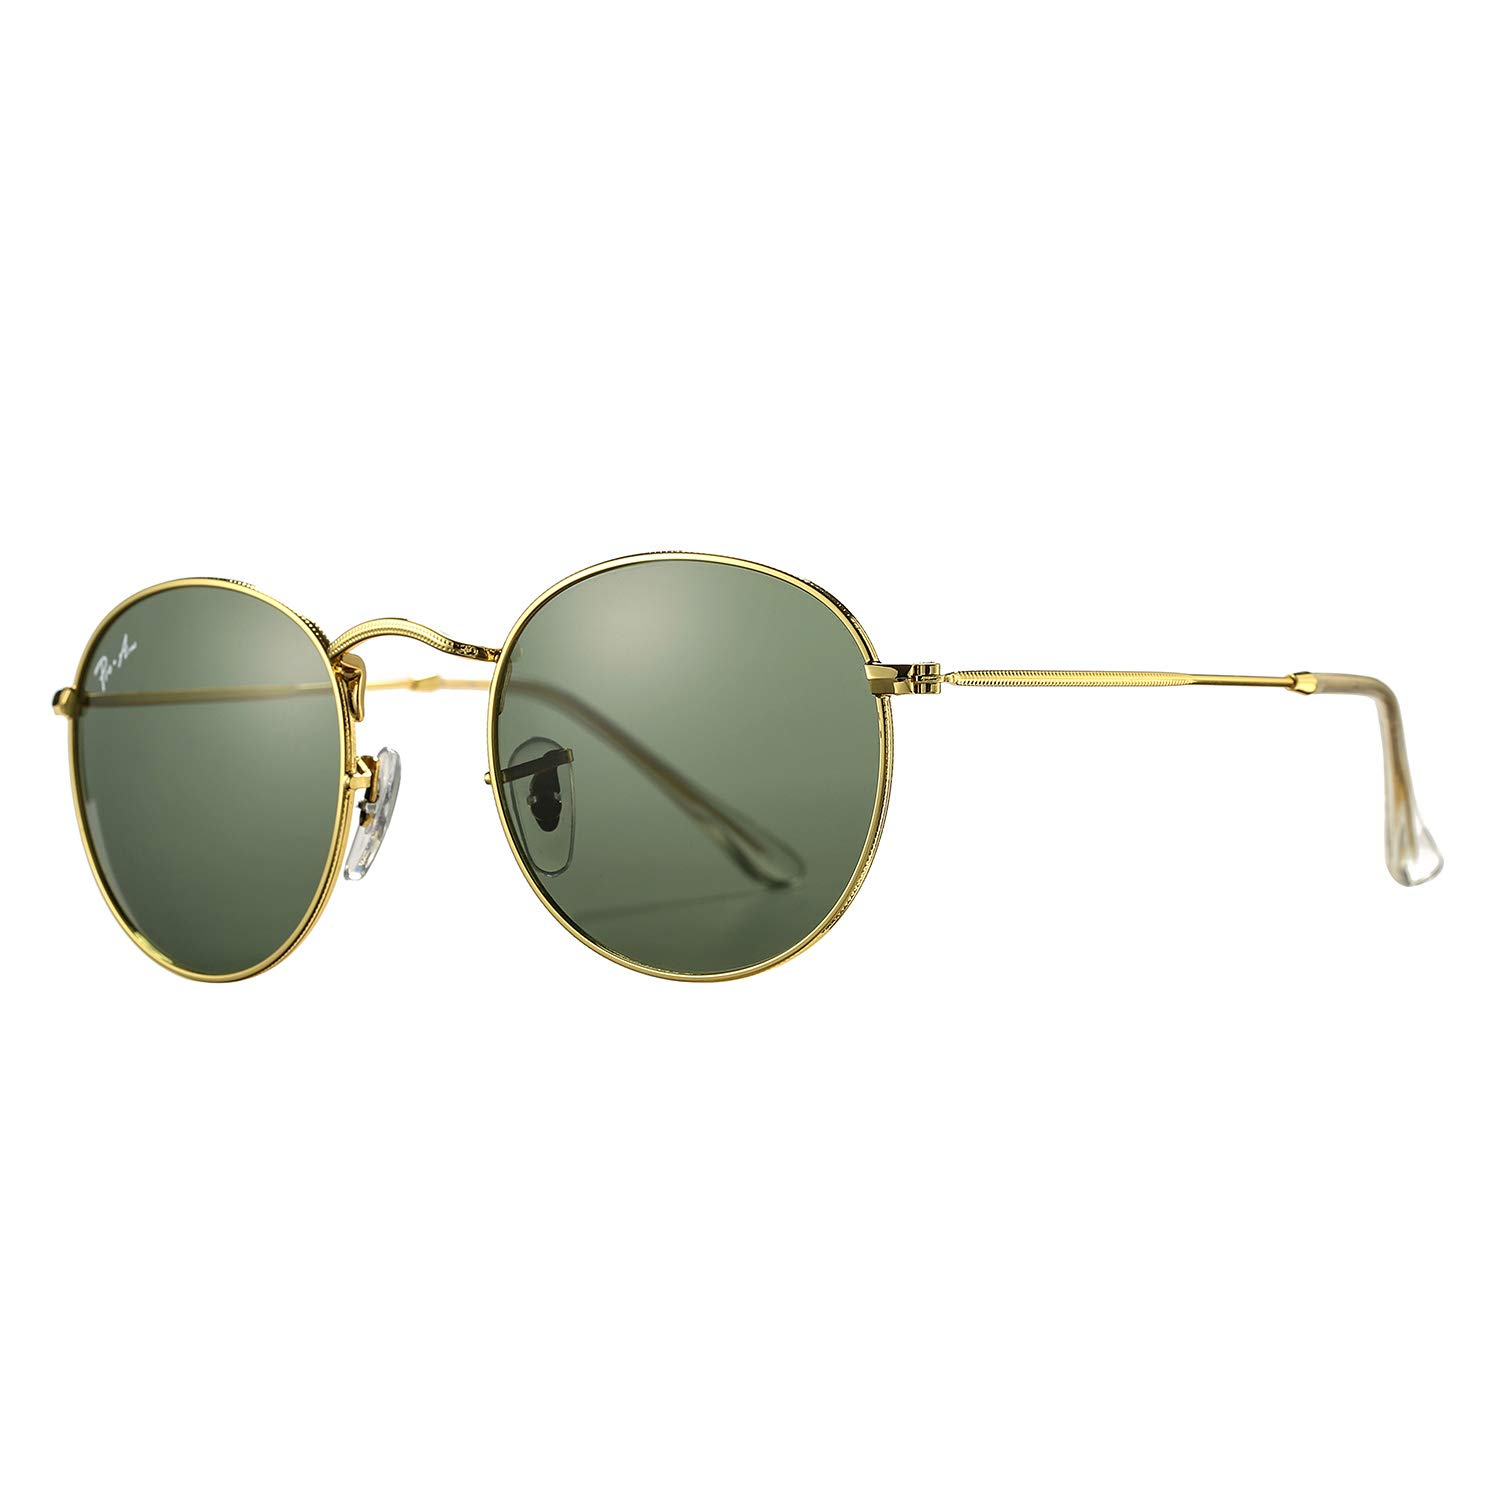 Pro Acme PA3447 Classic Crystal Glass Les Retro Round Metal Sunglasses,50mm (Crystal G15 Green Lens) by Pro Acme